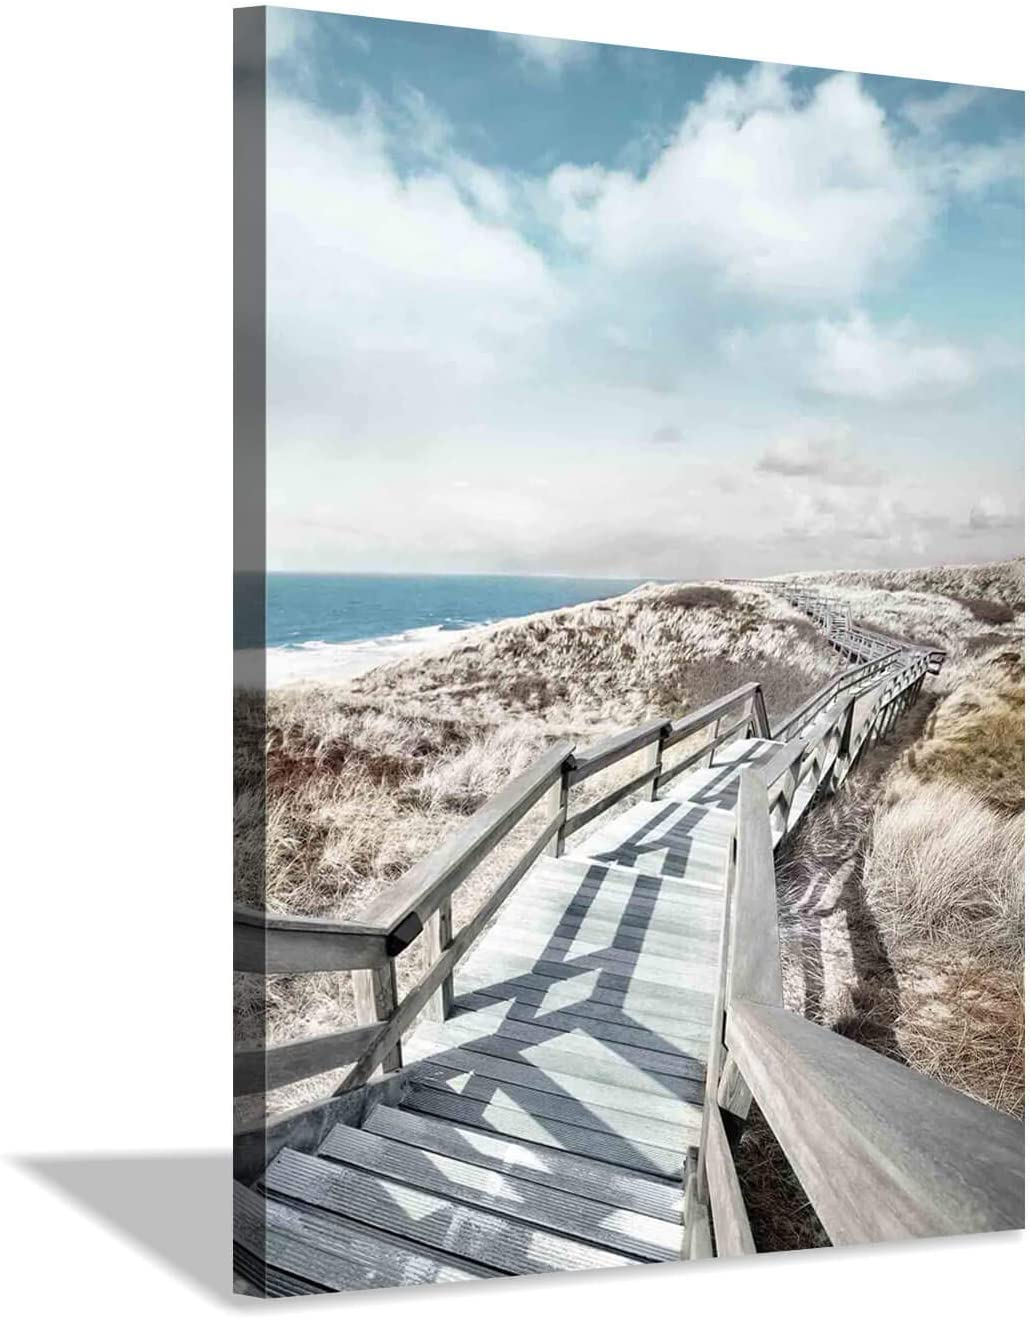 Beach Pier Canvas Wall Art: Boardwalk Stair Picture Graphic Art Painting for Wall Decor(12''x16'')